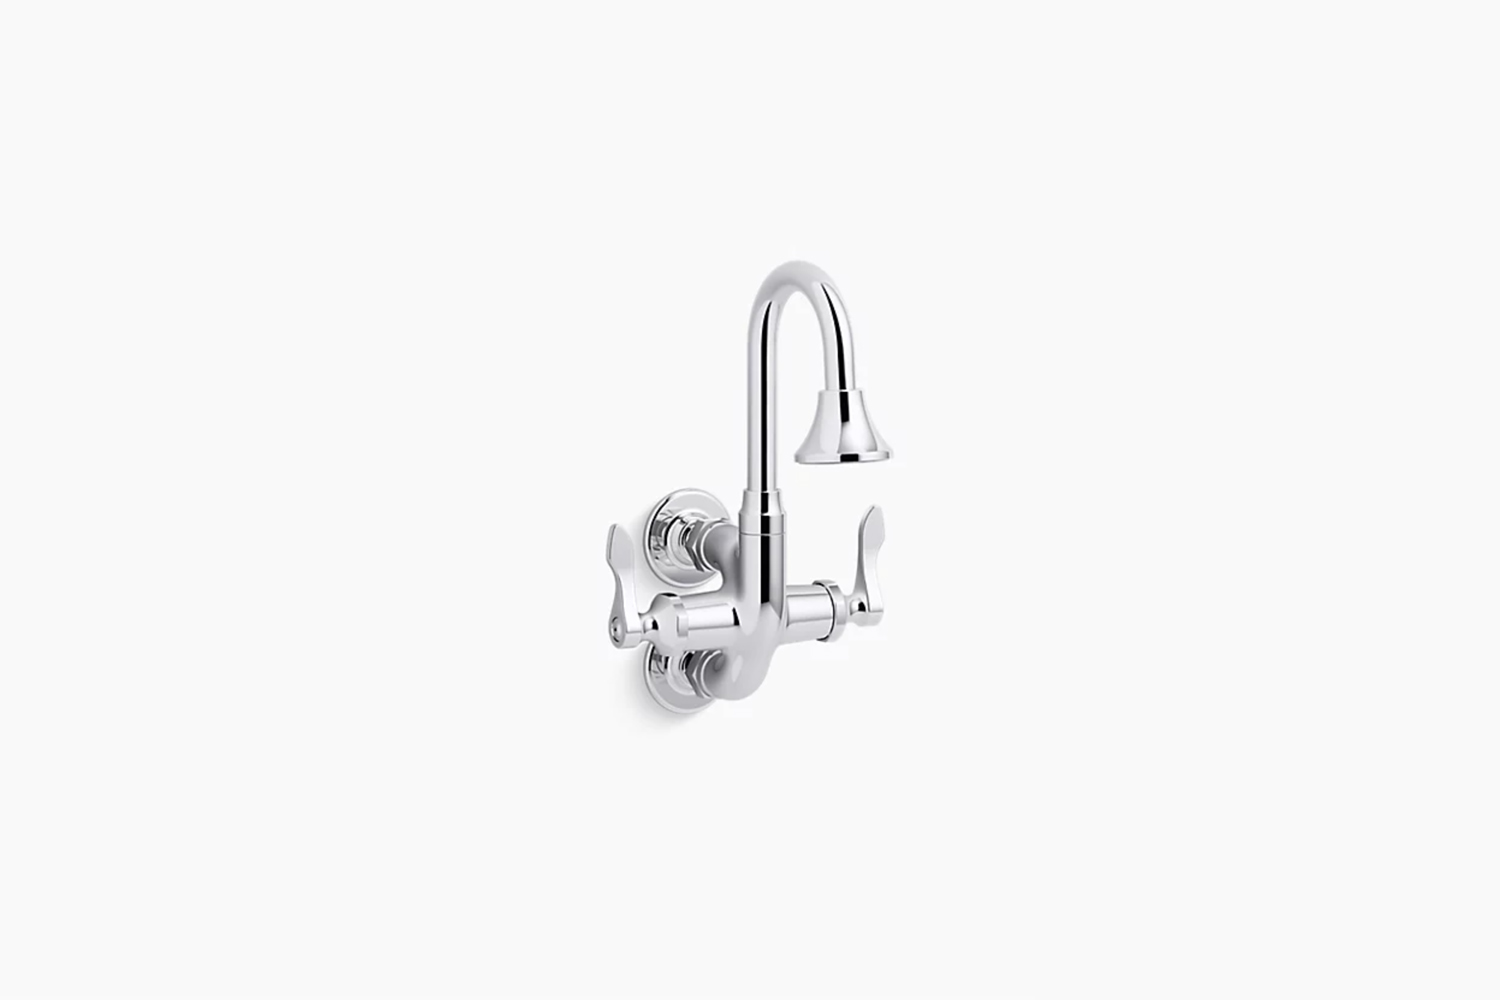 the triton bowe cannock \1\2 gpm service sink faucet with gooseneck spout and l 17